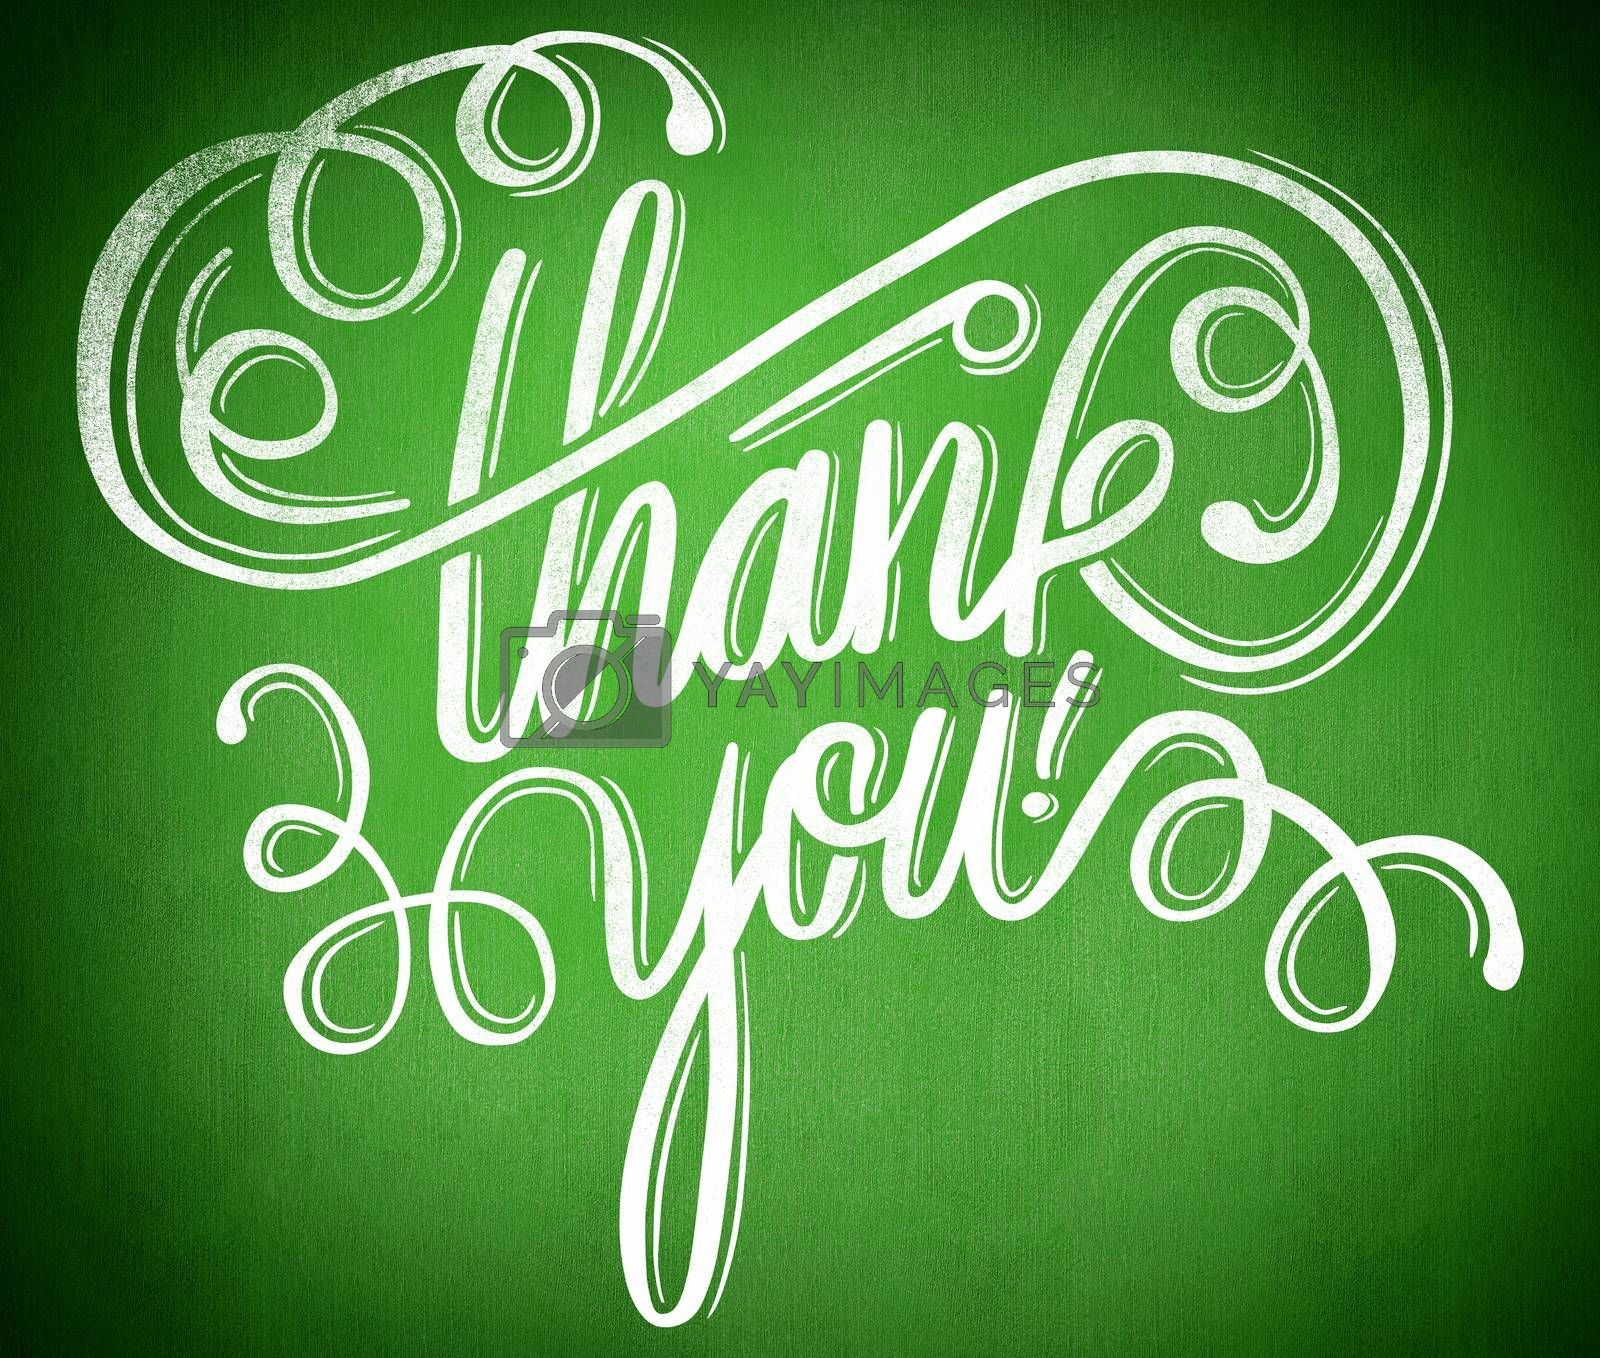 Thank you message against green background